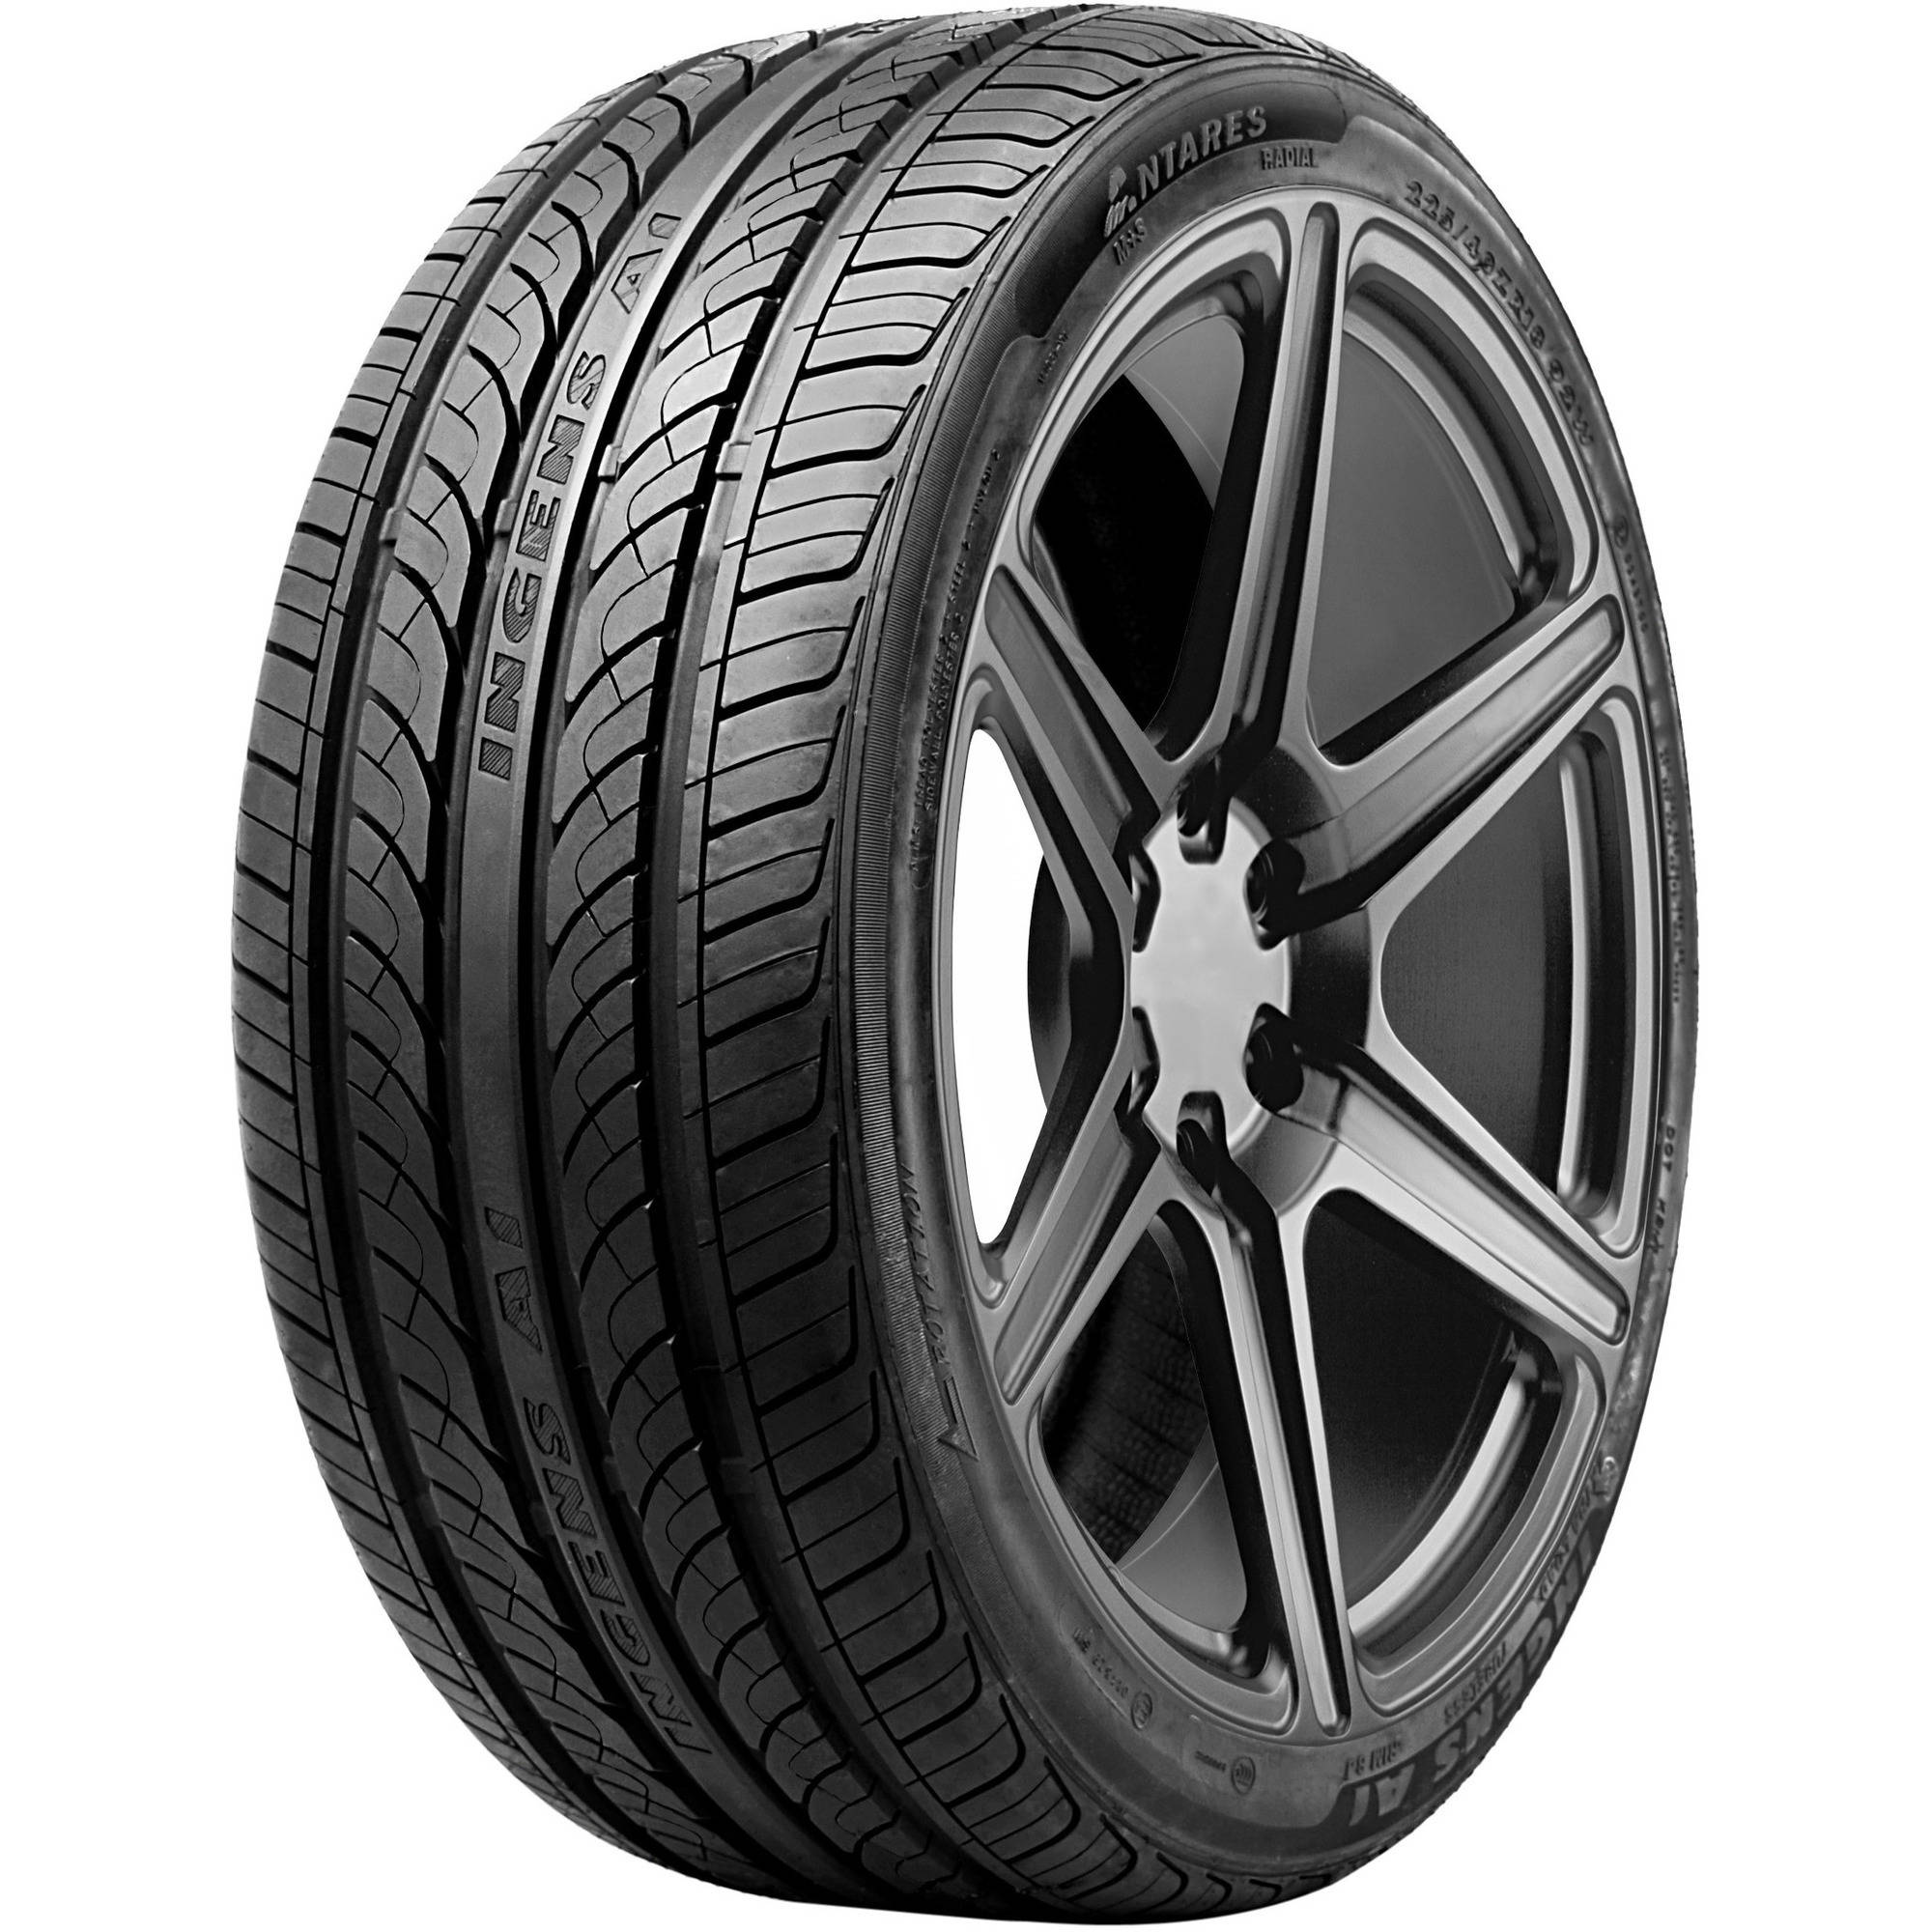 Antares Ingens A1 225 45R17 94W Tire by Antares